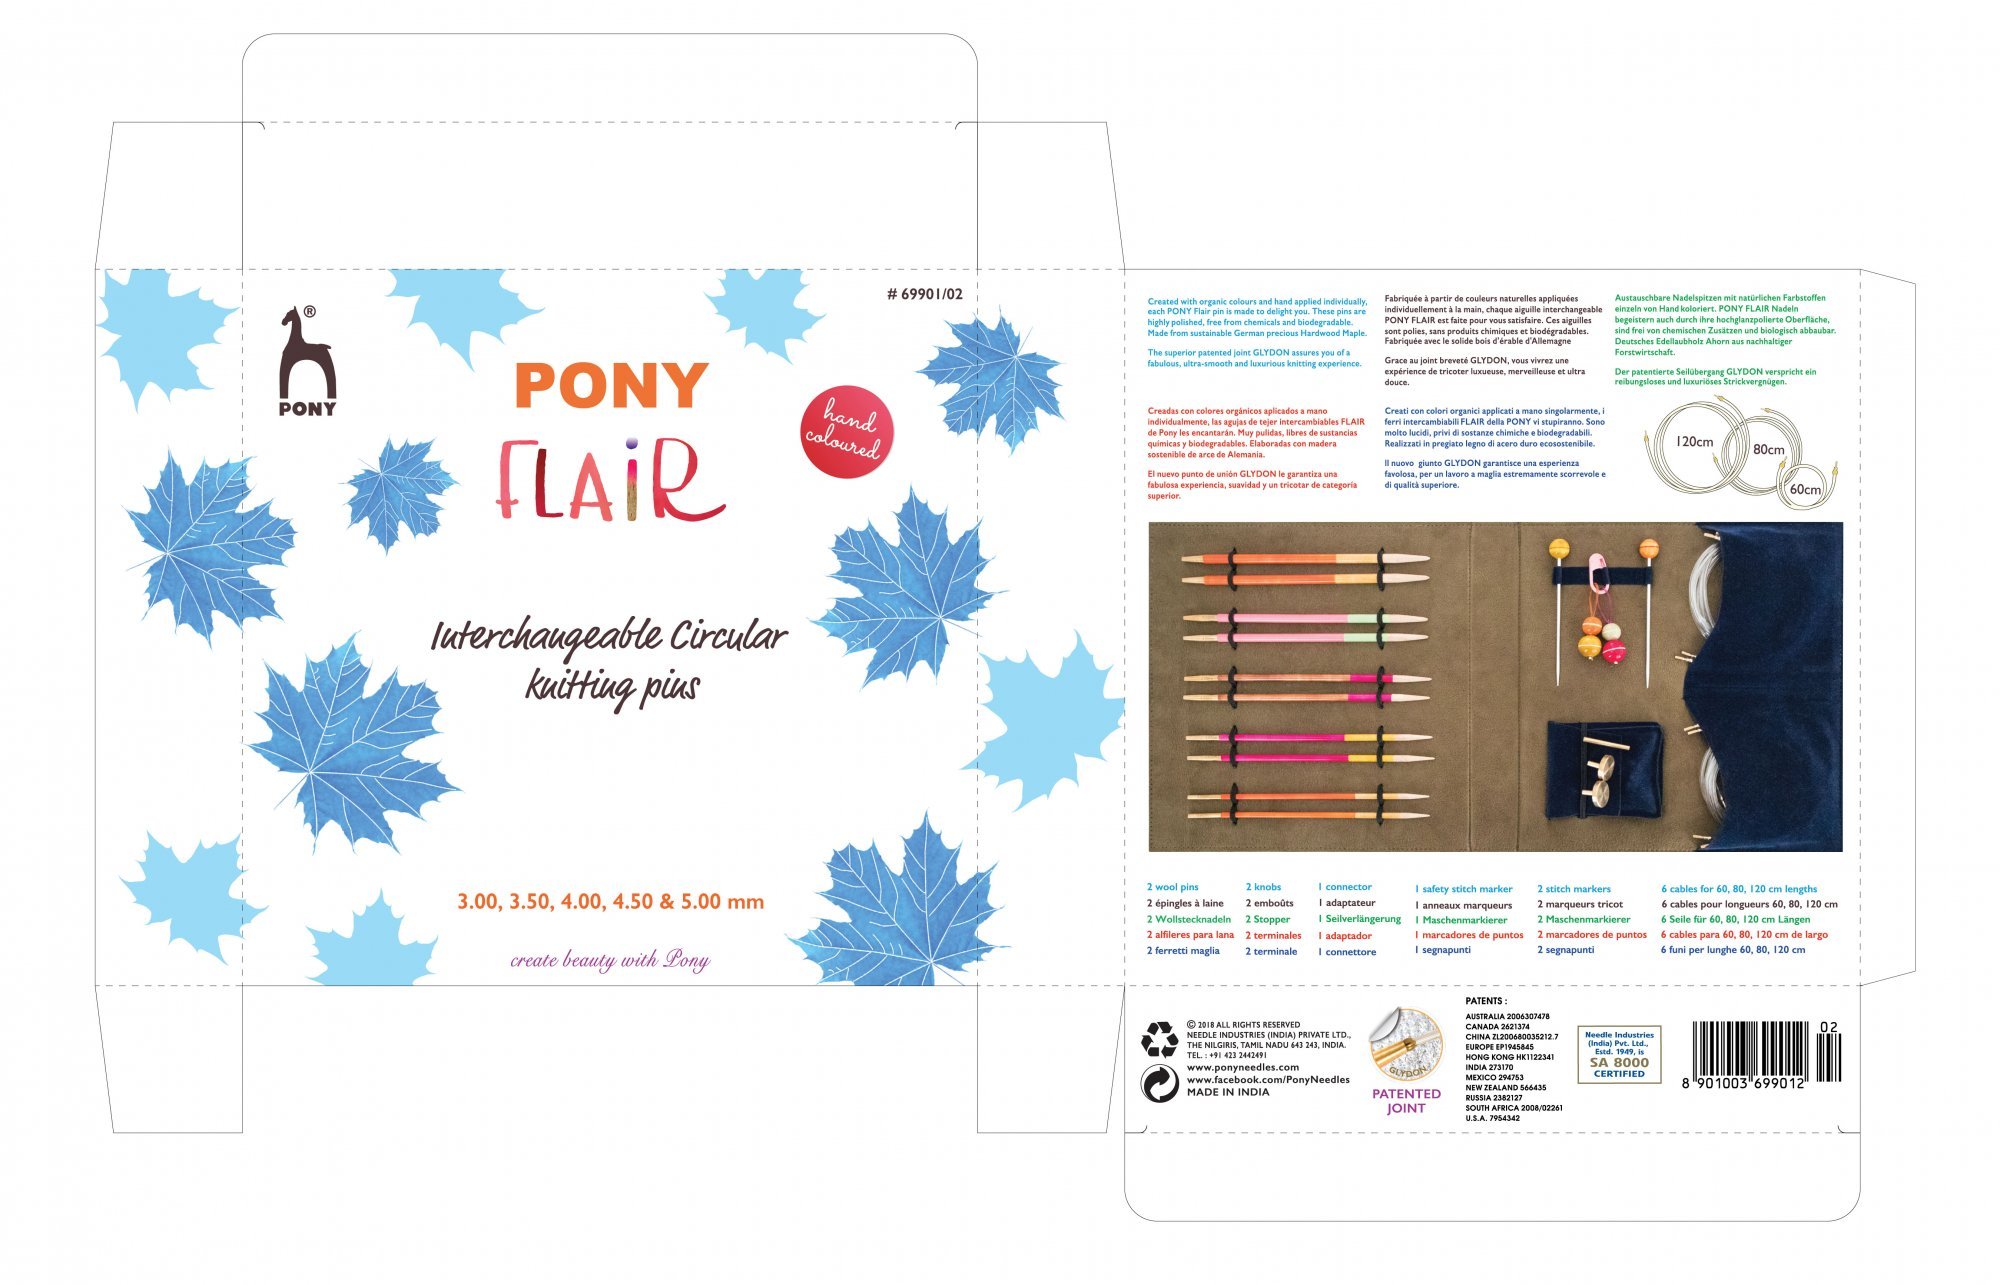 Pony Flair Interchangeable Circular Knitting Kit